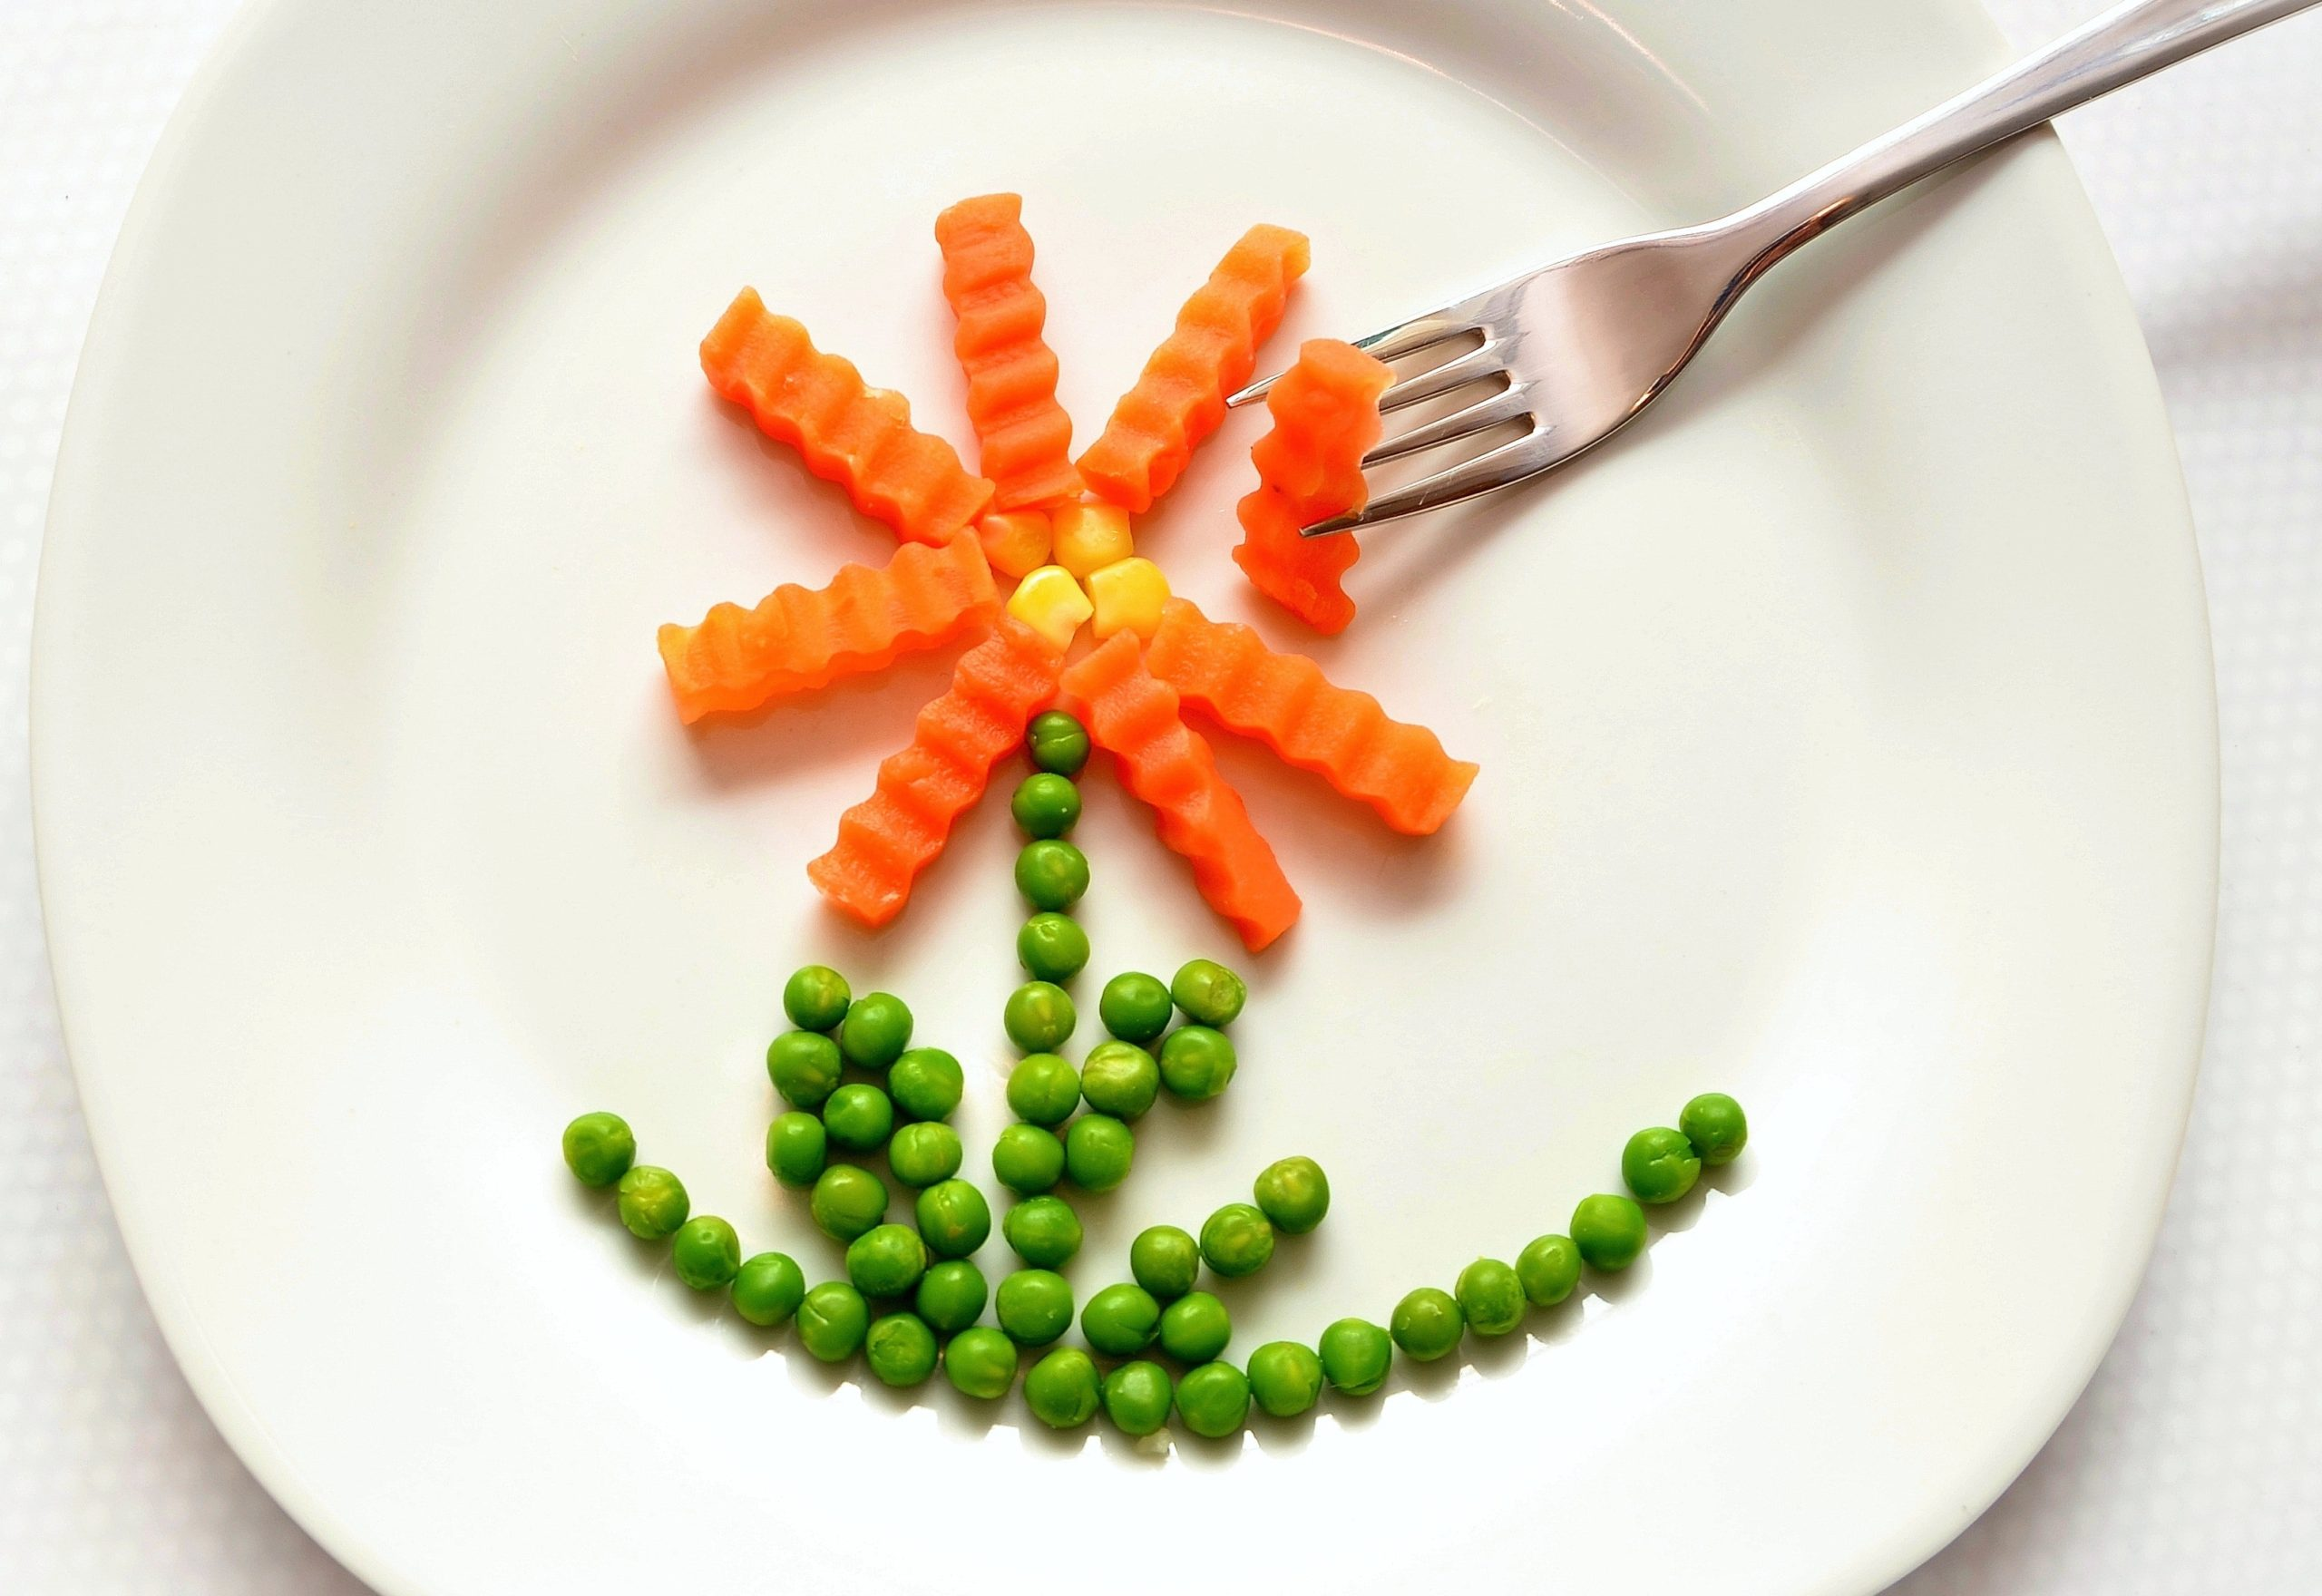 Carrots and peas on a white plate making a flower